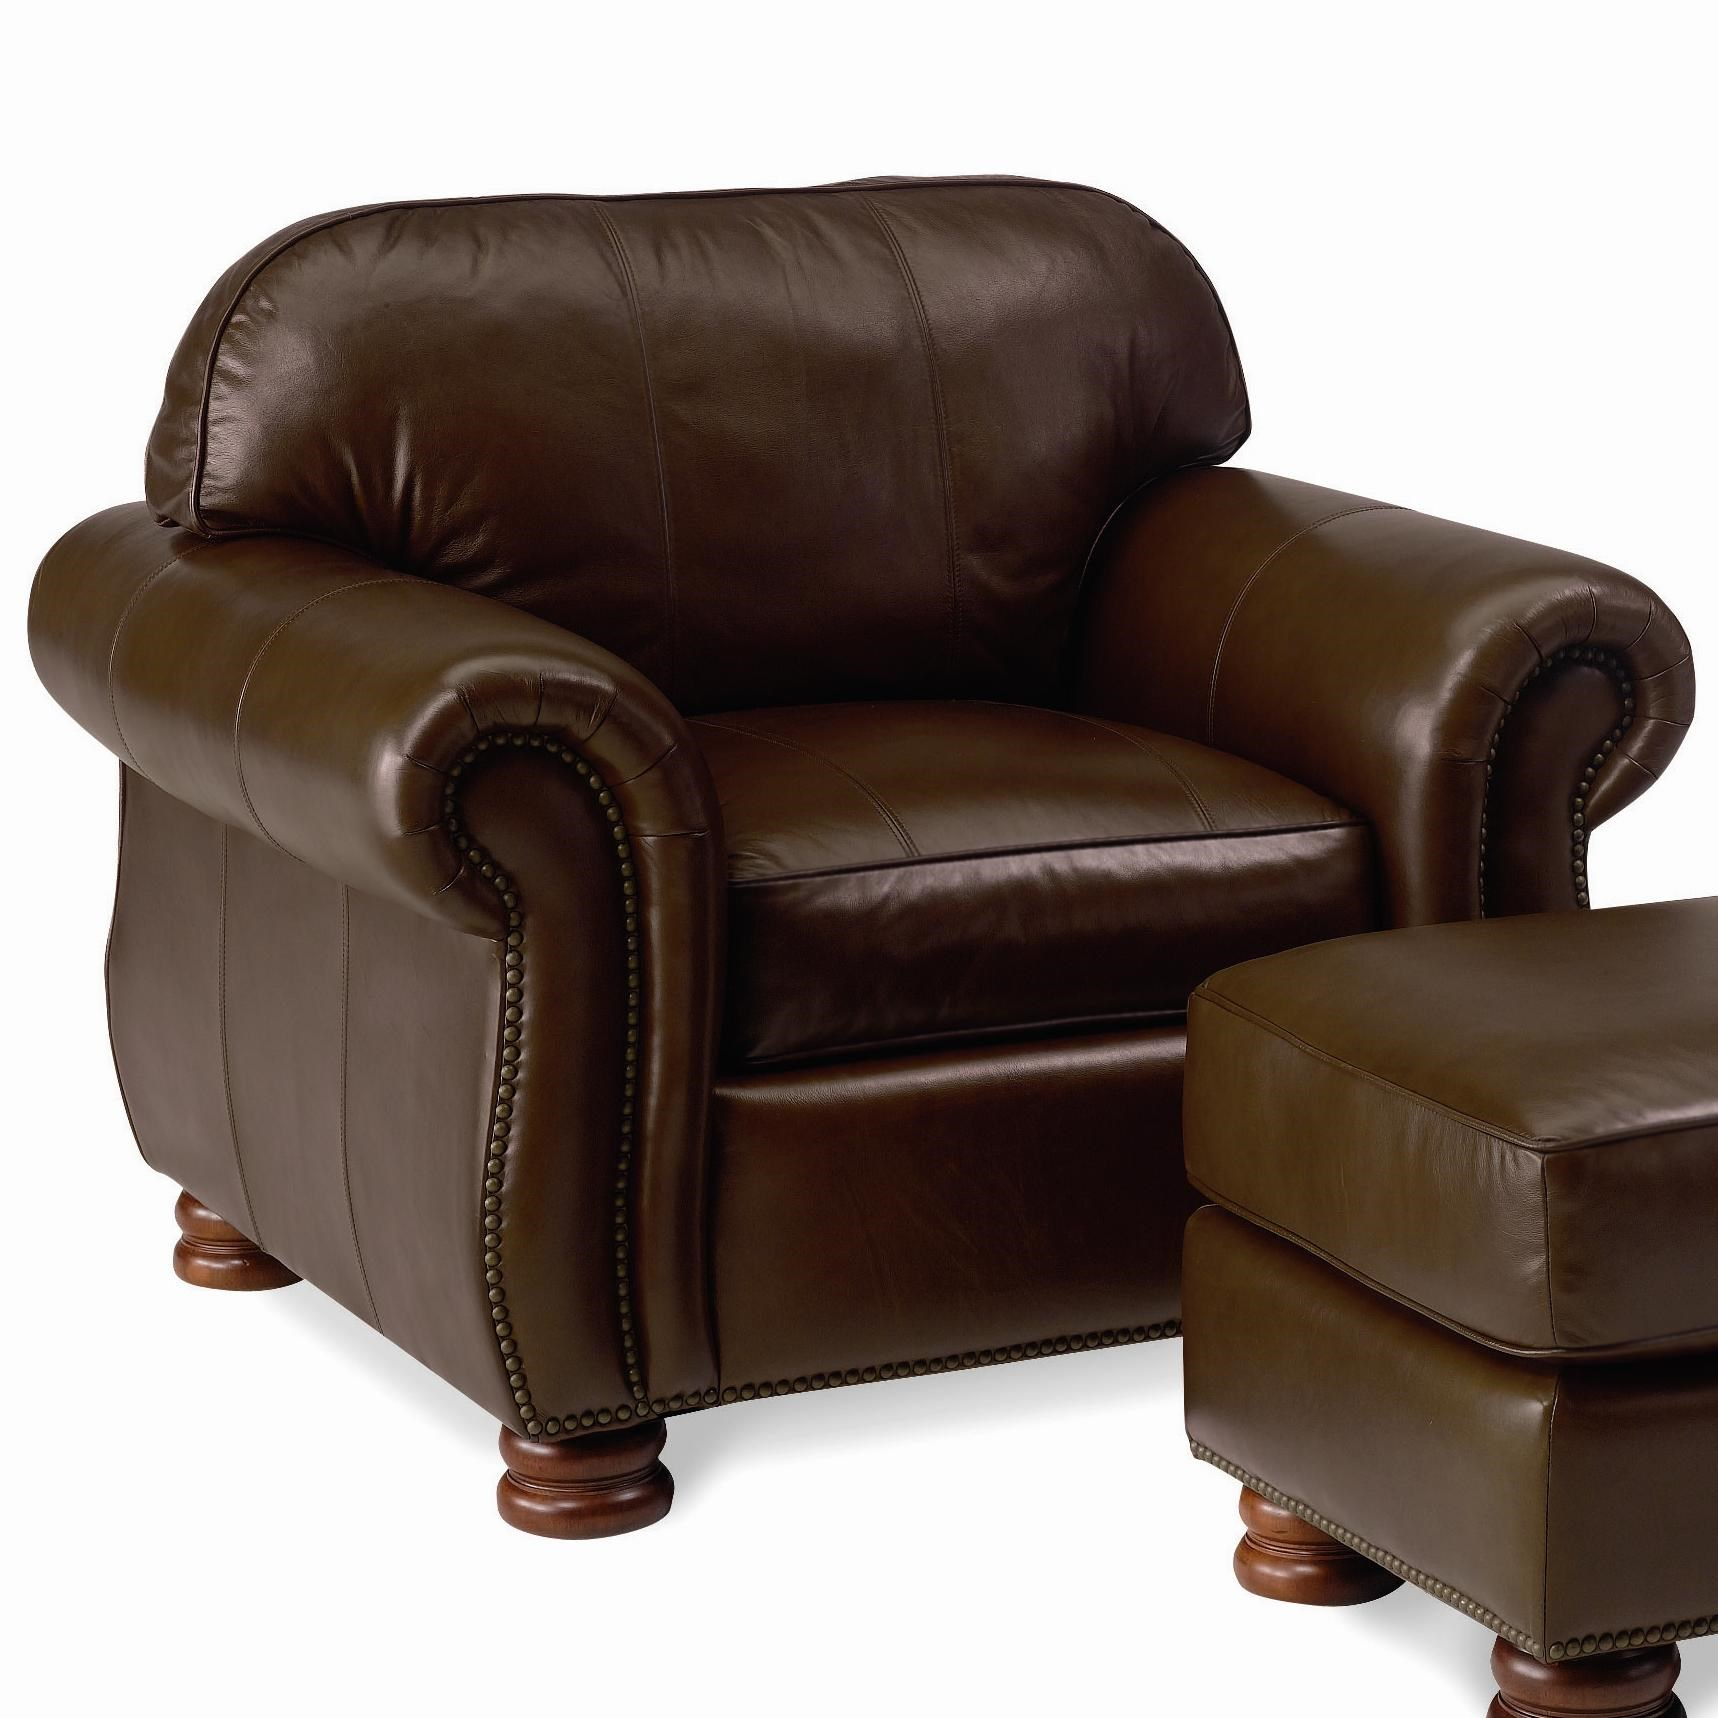 Lovely Thomasville® Leather Choices   BenjaminLeather Select Chair ...